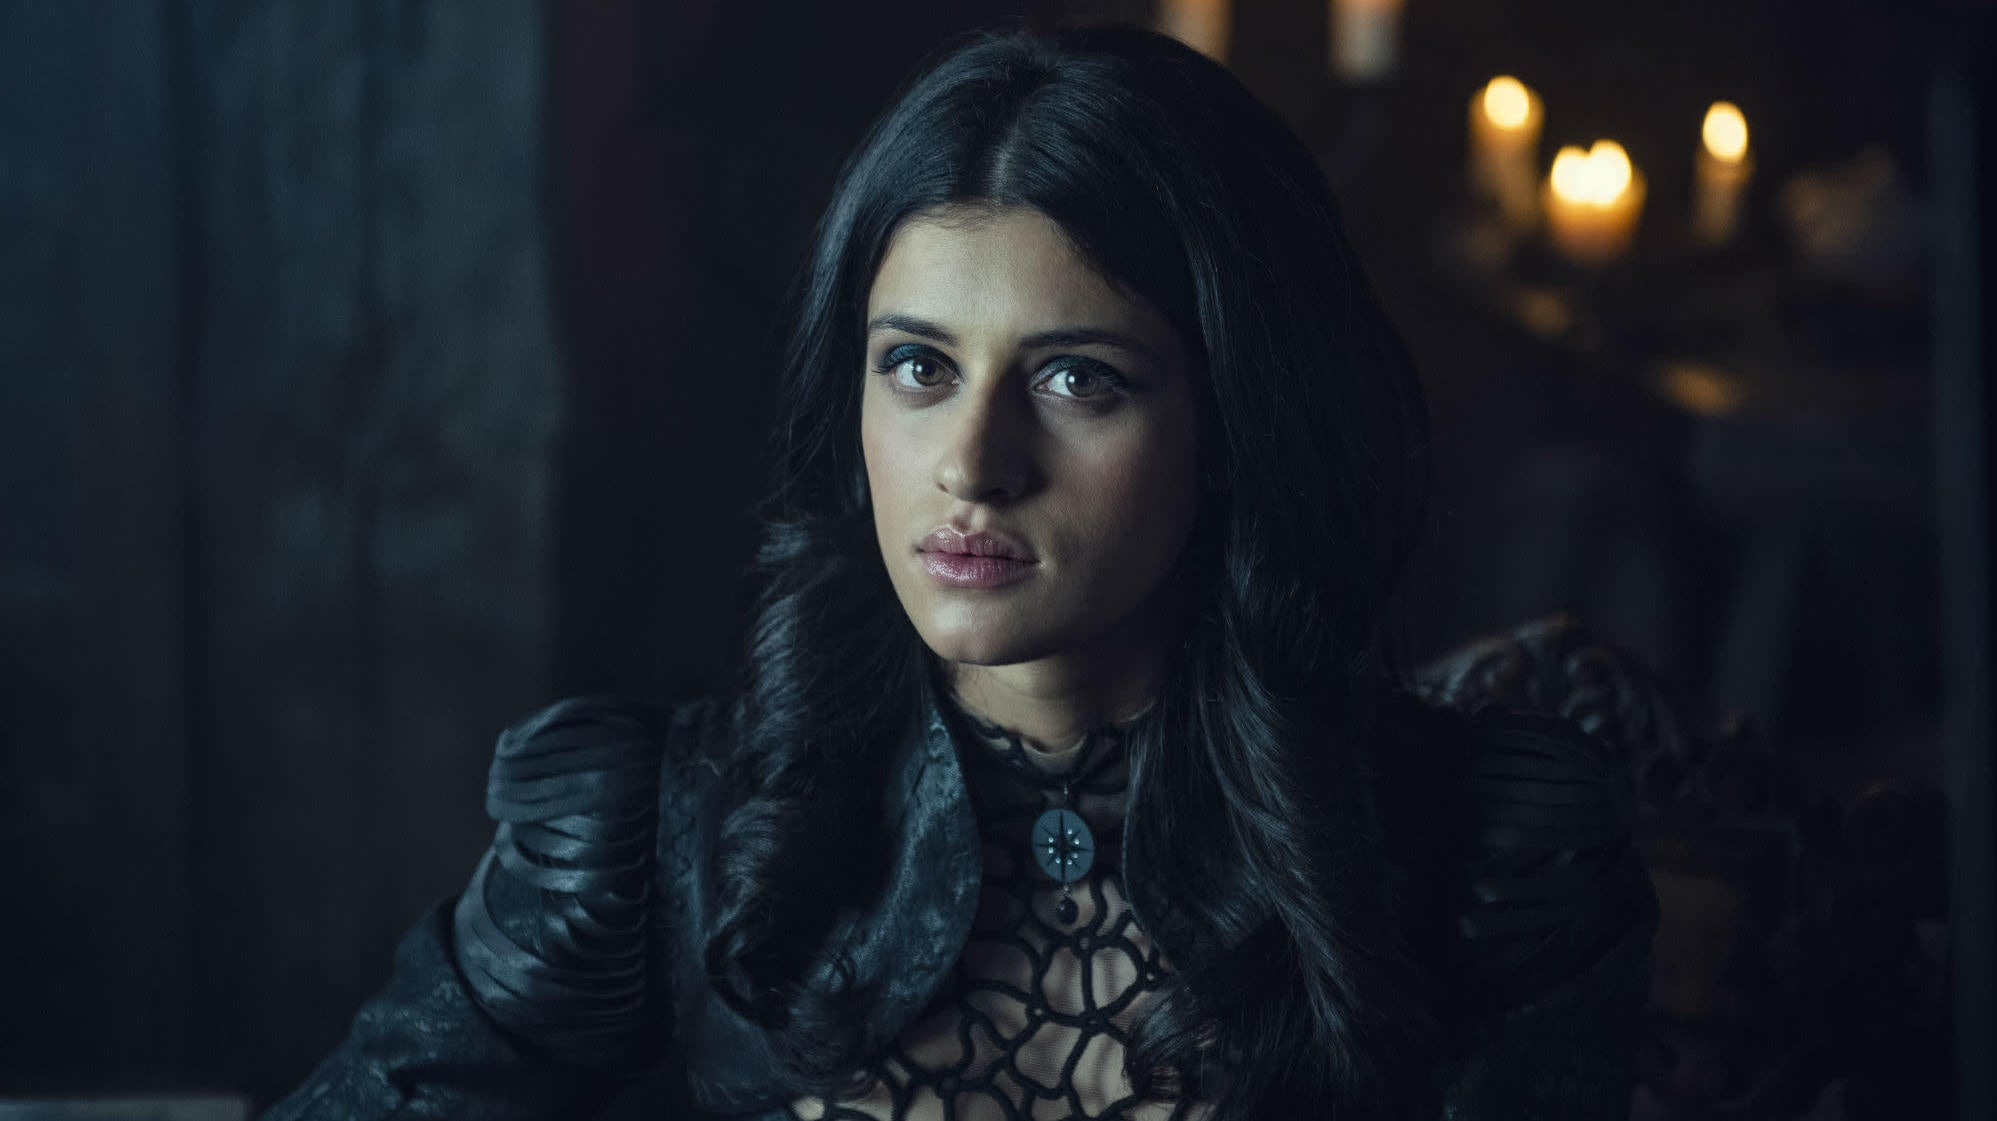 Three New Featurettes Dive Deeper Into The Witcher's Main Characters